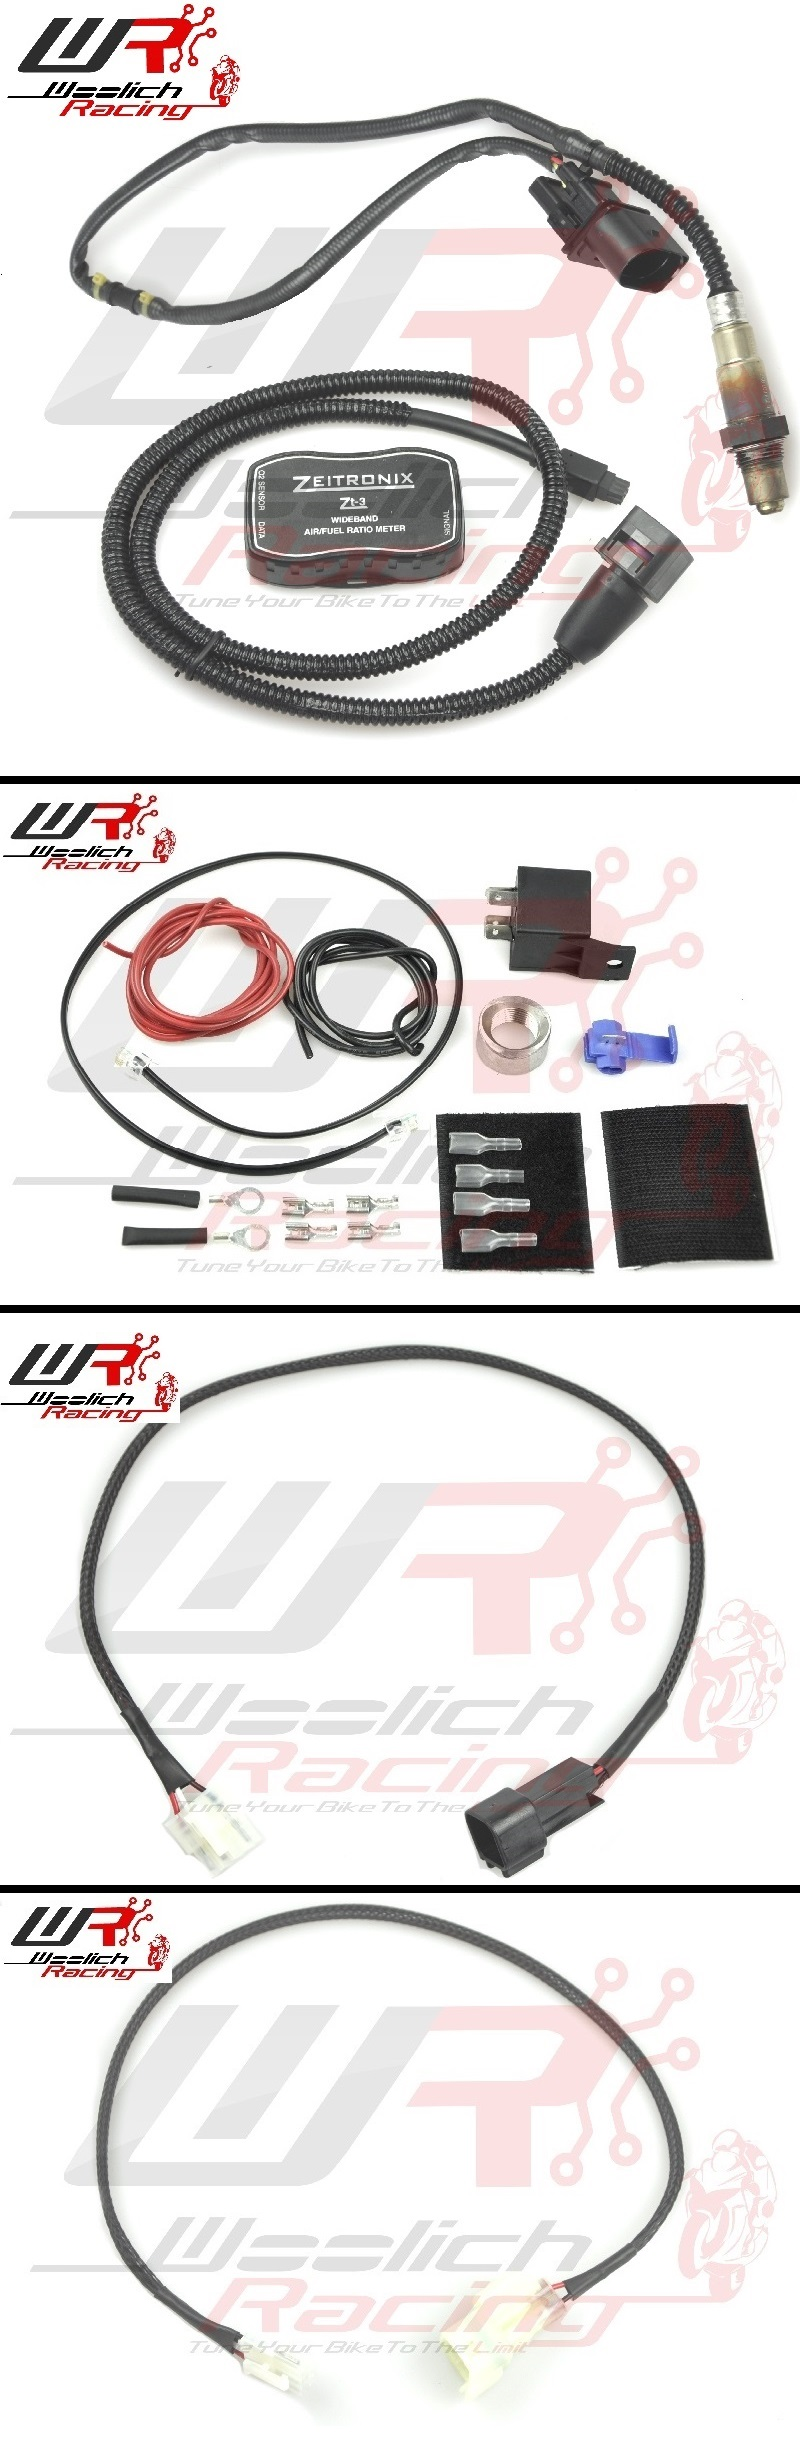 2011-2013 Kawasaki Z1000SX Log Box (Denso) v3 + Zeitronix ZT-3 Wideband O2 Package